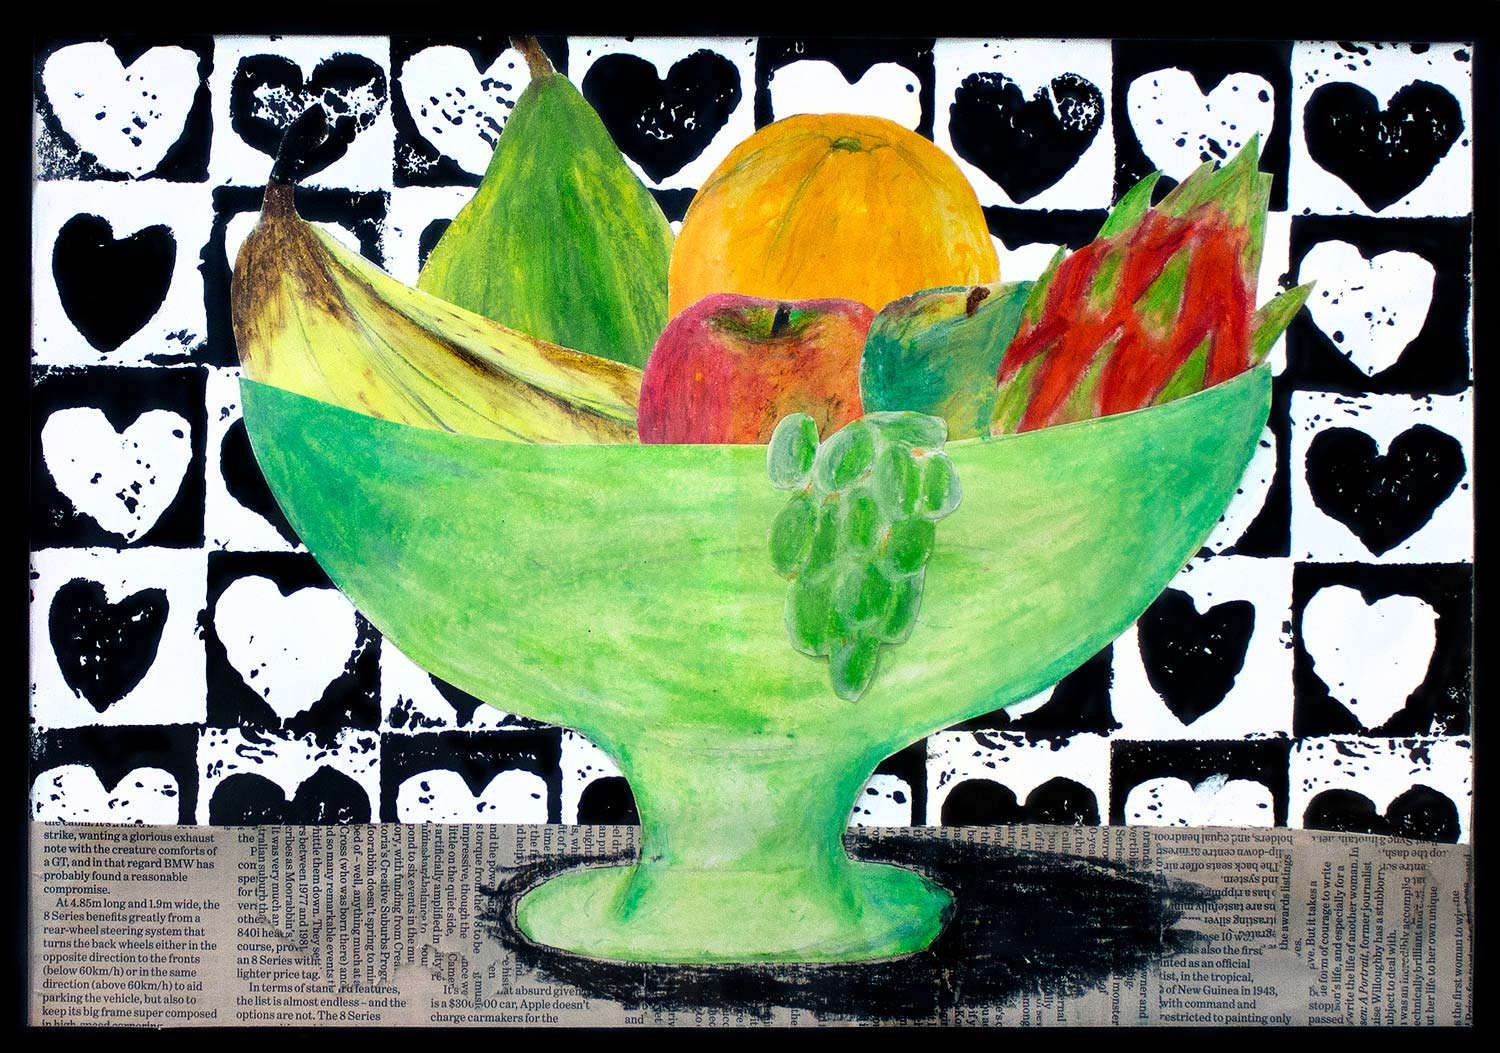 Student artwork of a still life with fruit bowl